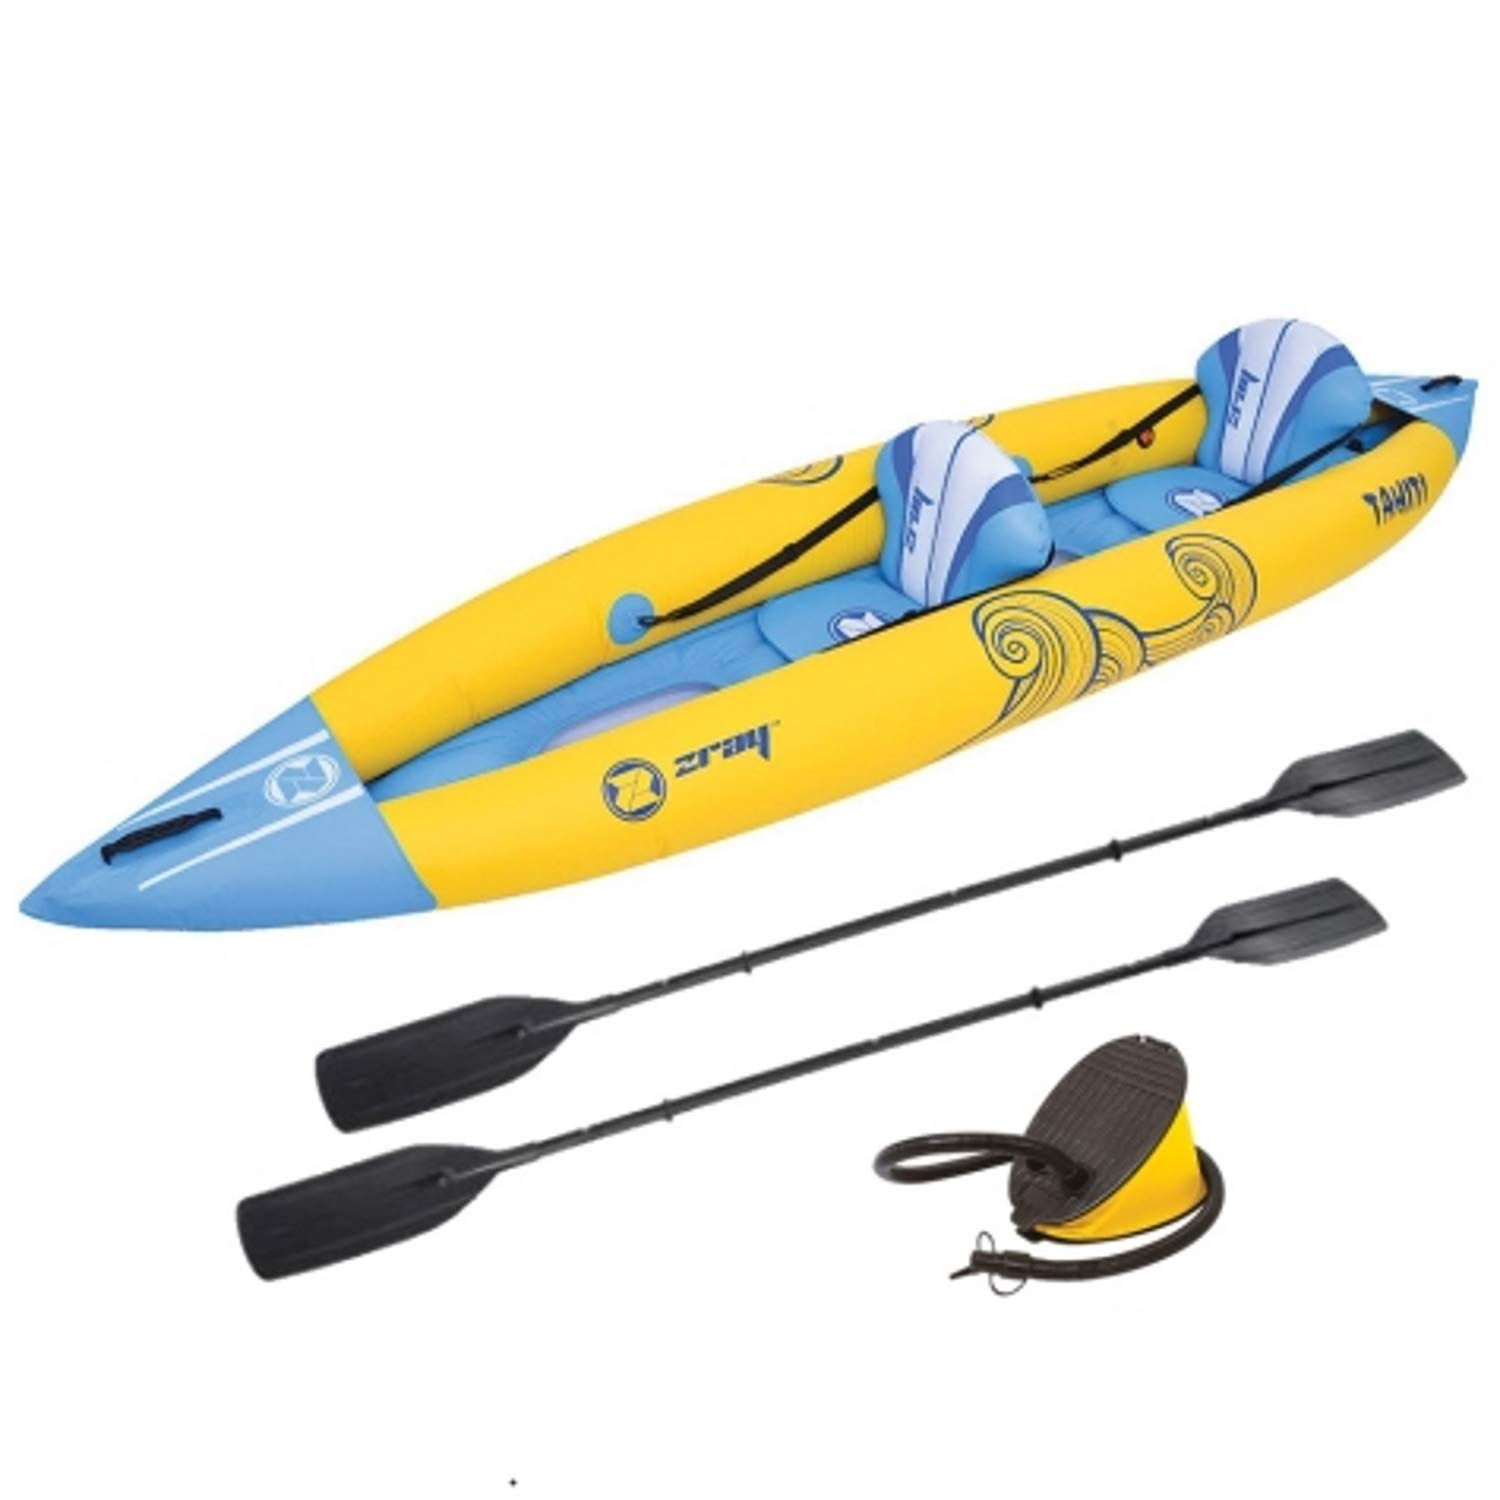 Z-Ray Tahiti Inflatable 2-Person Kayak with Pump and Oars by Zray